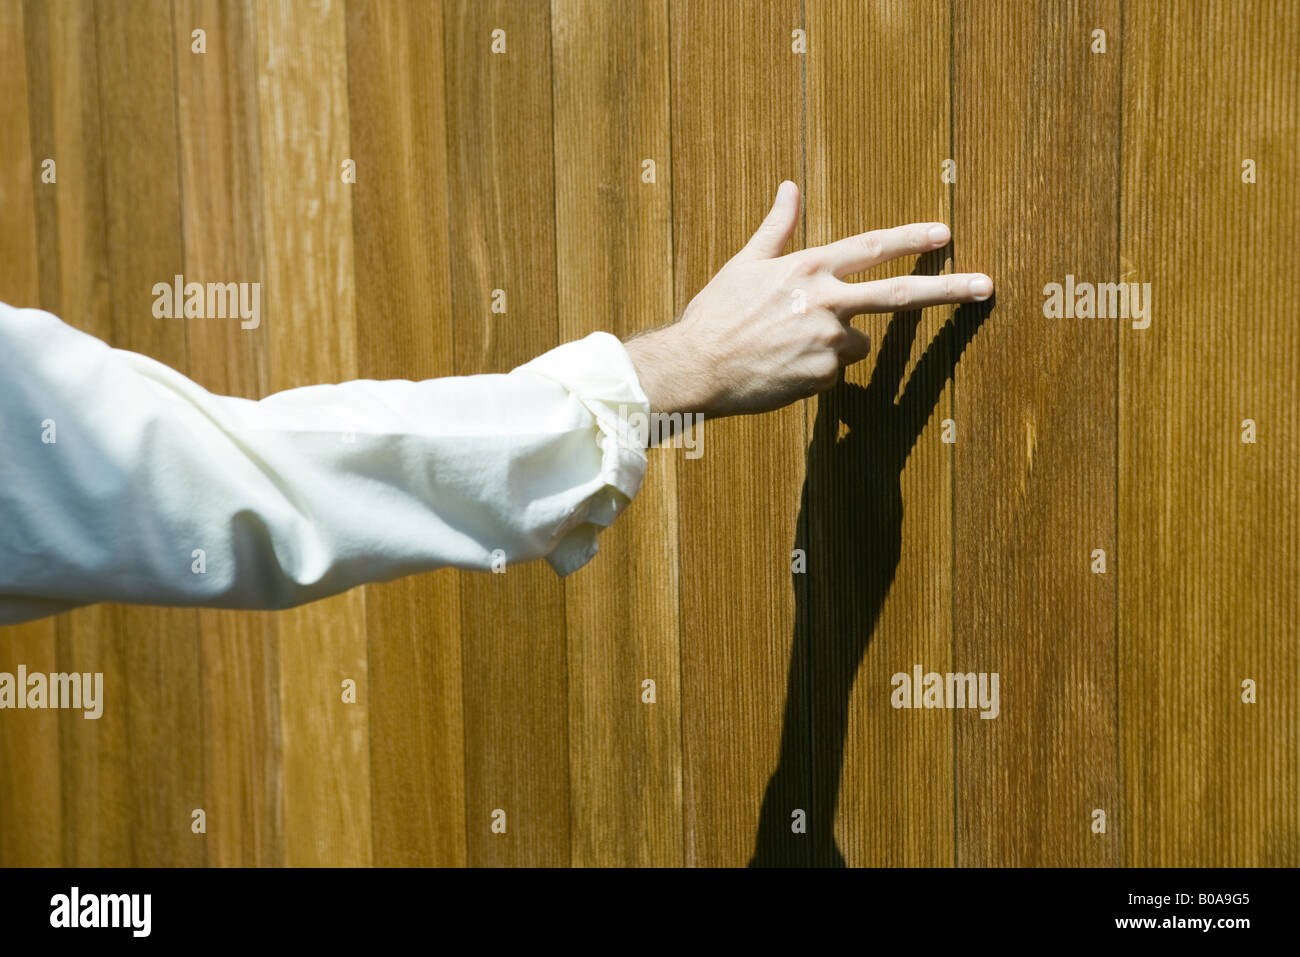 Man touching wood paneling with fingers, cropped view - Stock Image